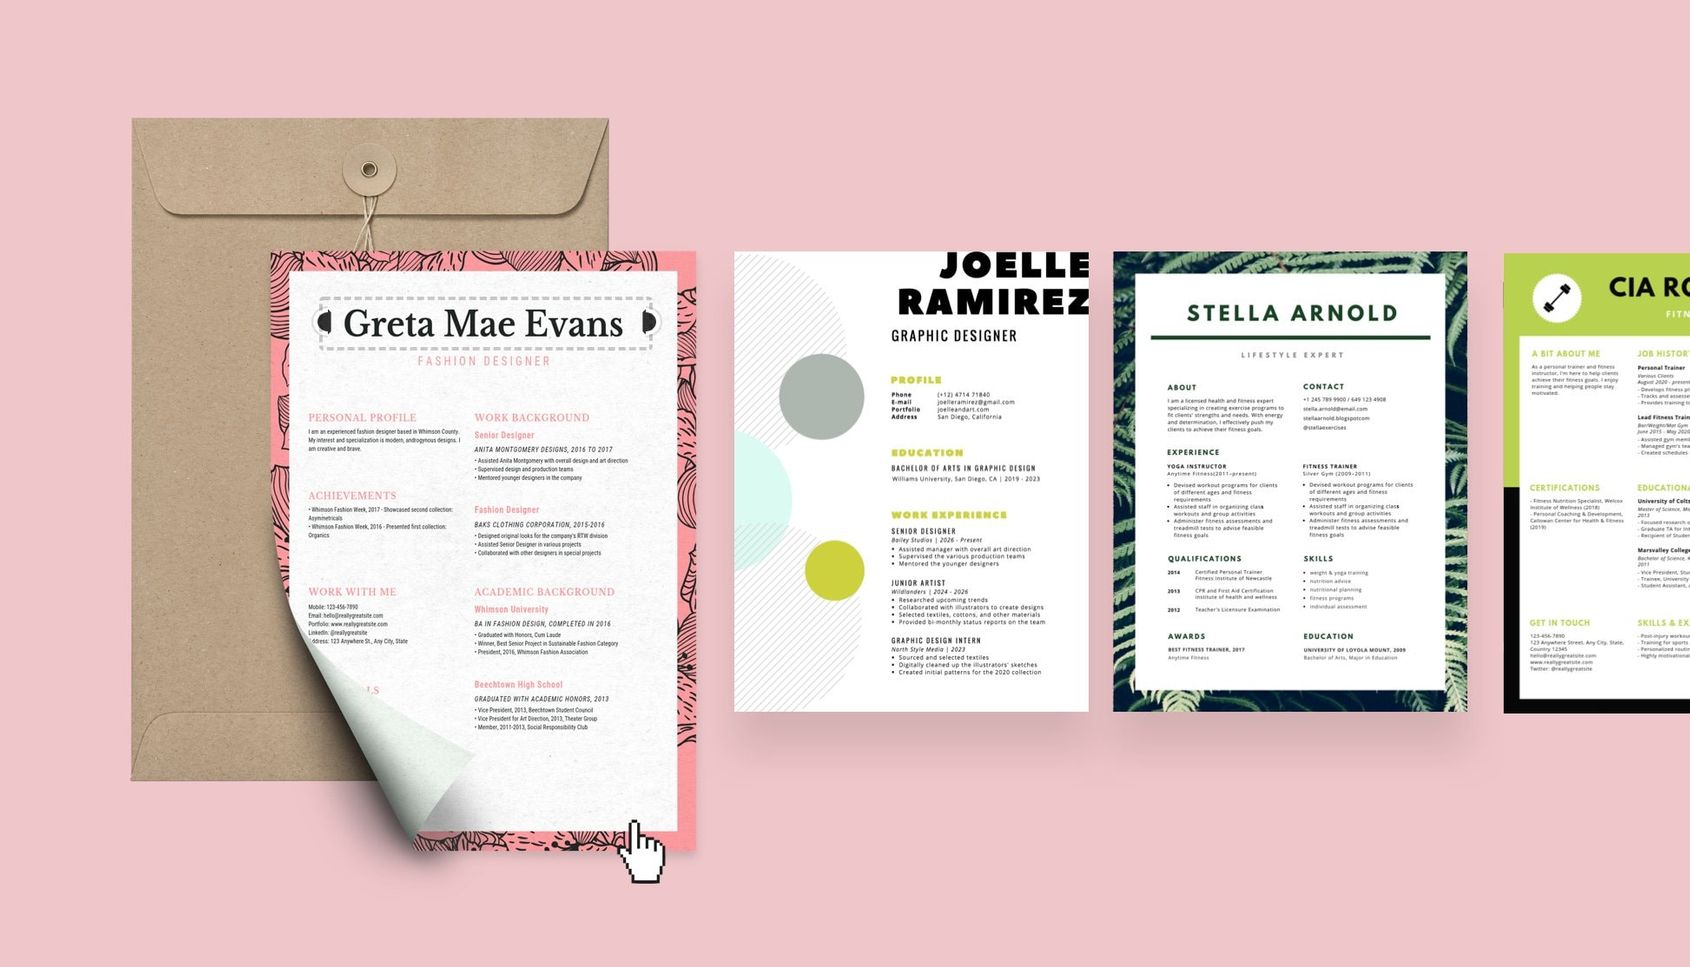 free resume builder design custom in canva from existing desiopt blast professional Resume Free Resume Builder From Existing Resume